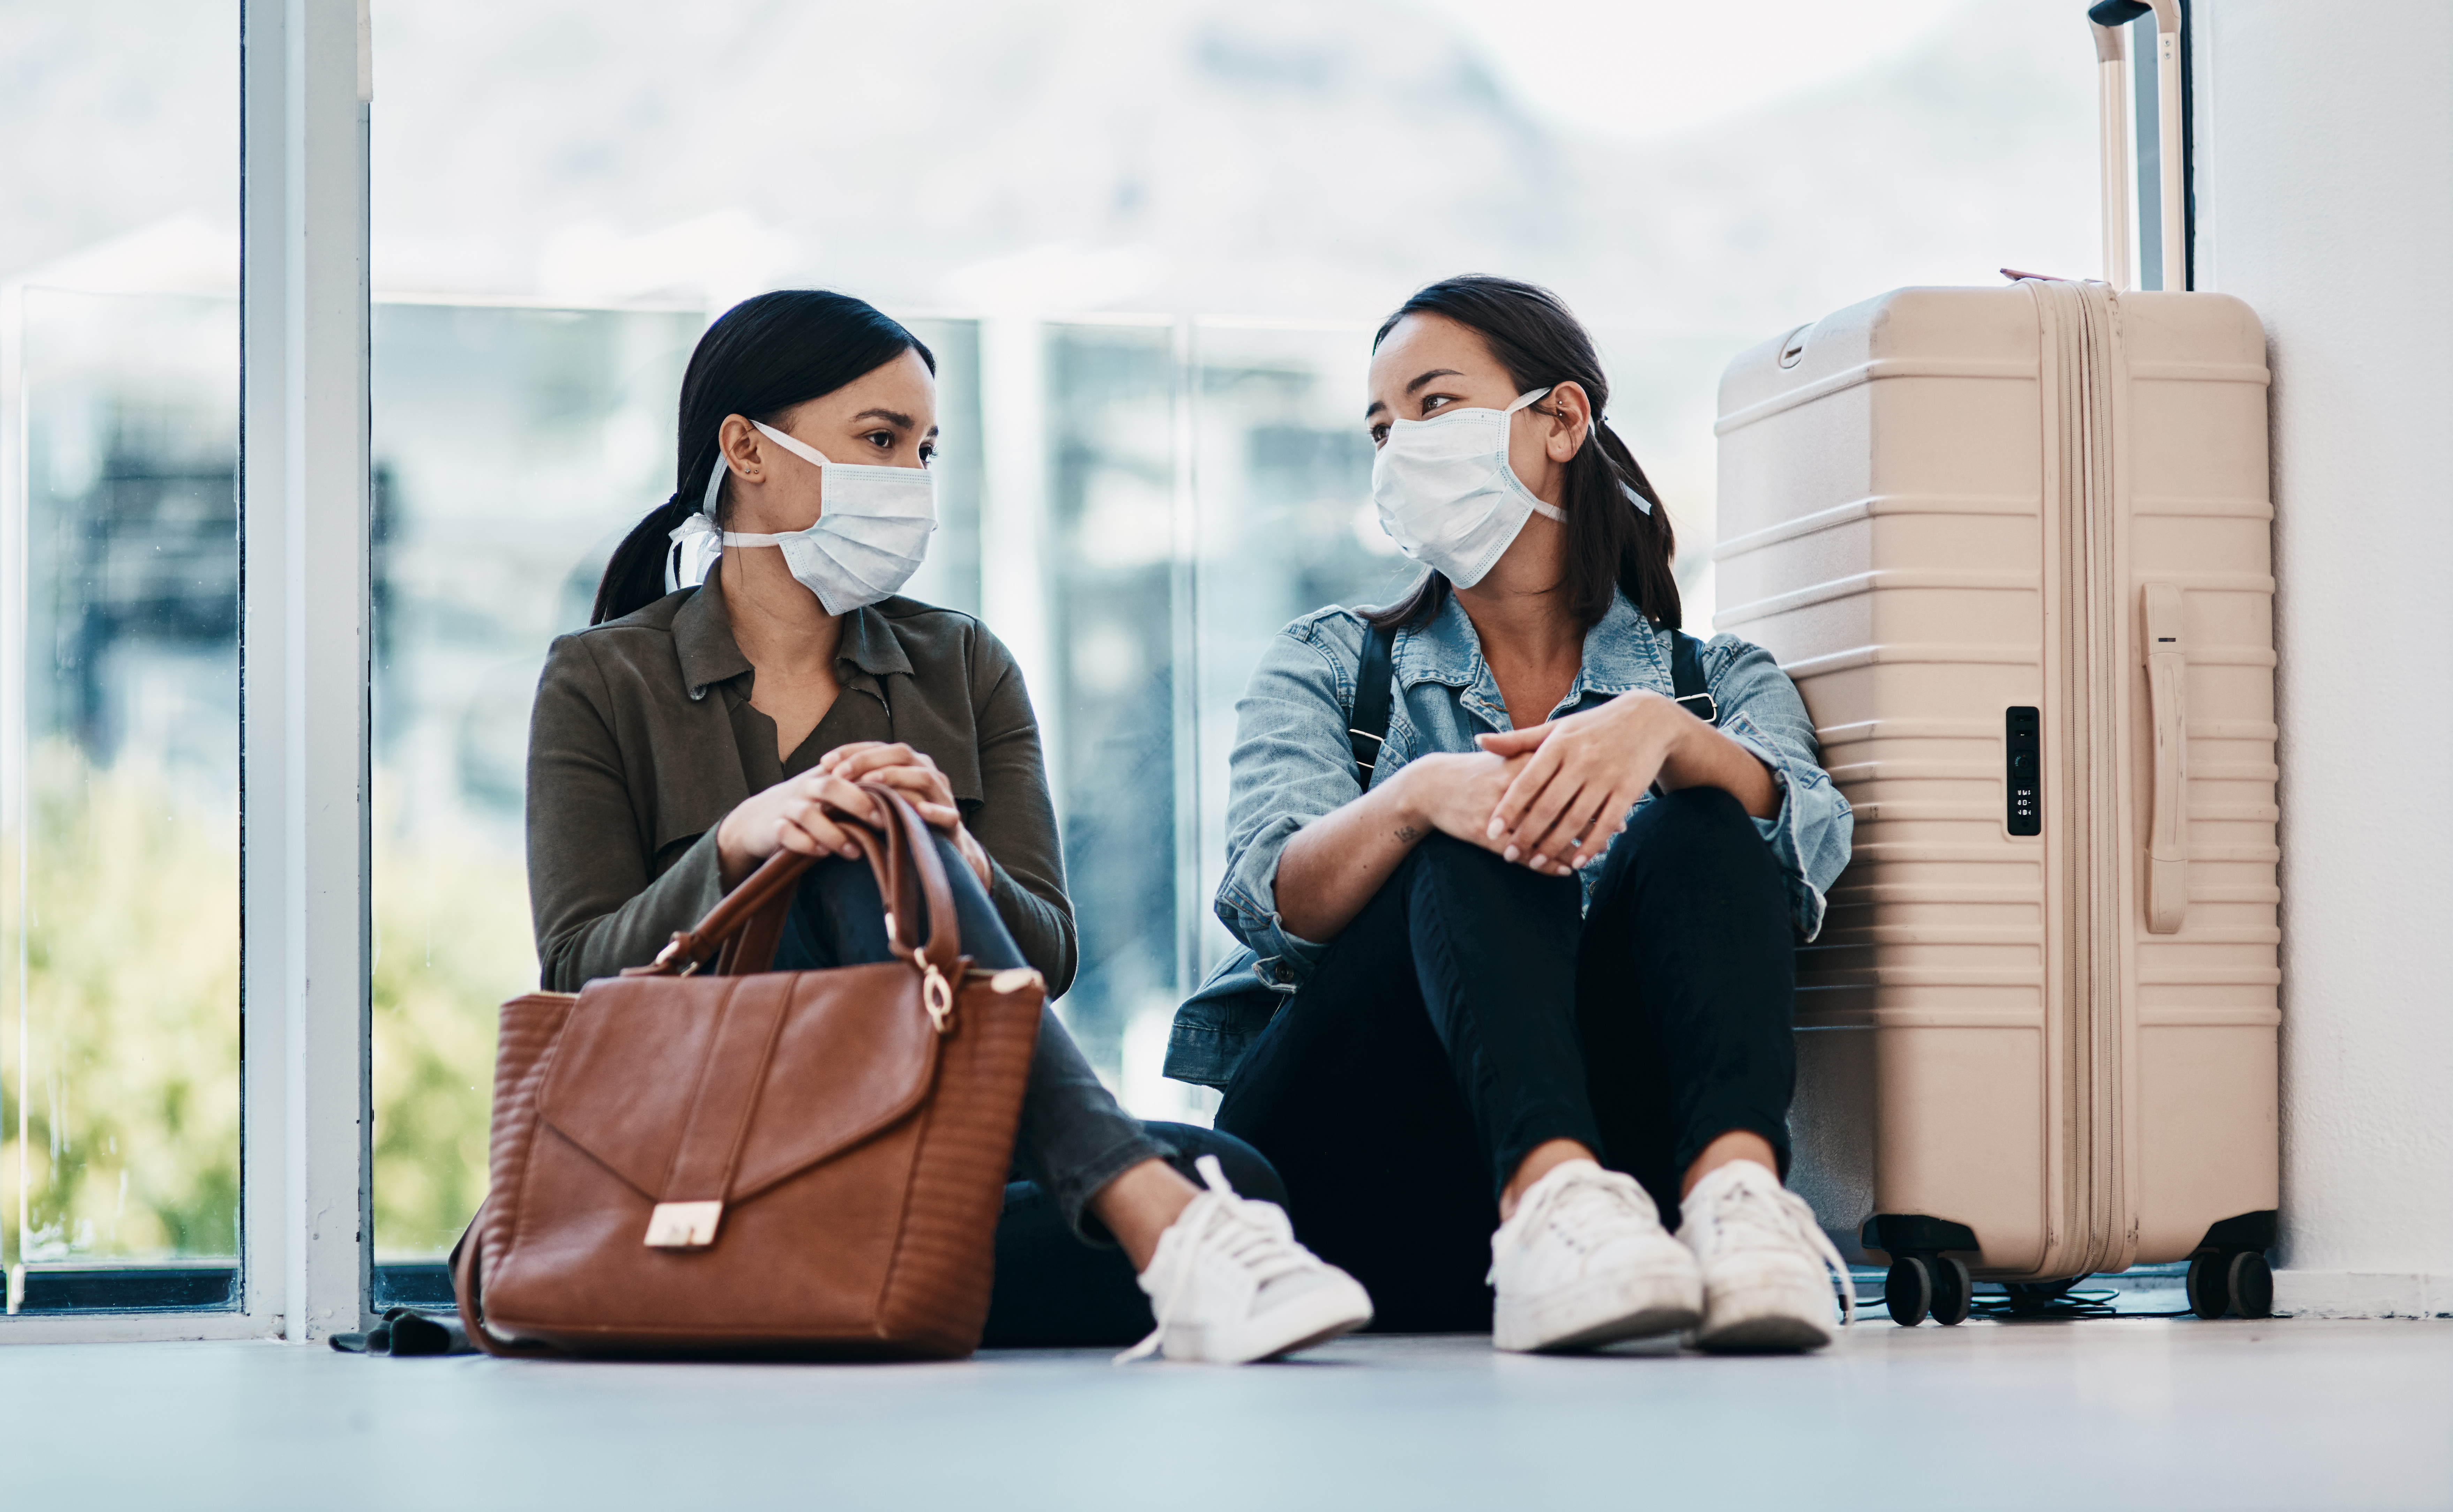 Can Employers Limit Employee Travel During Coronavirus?